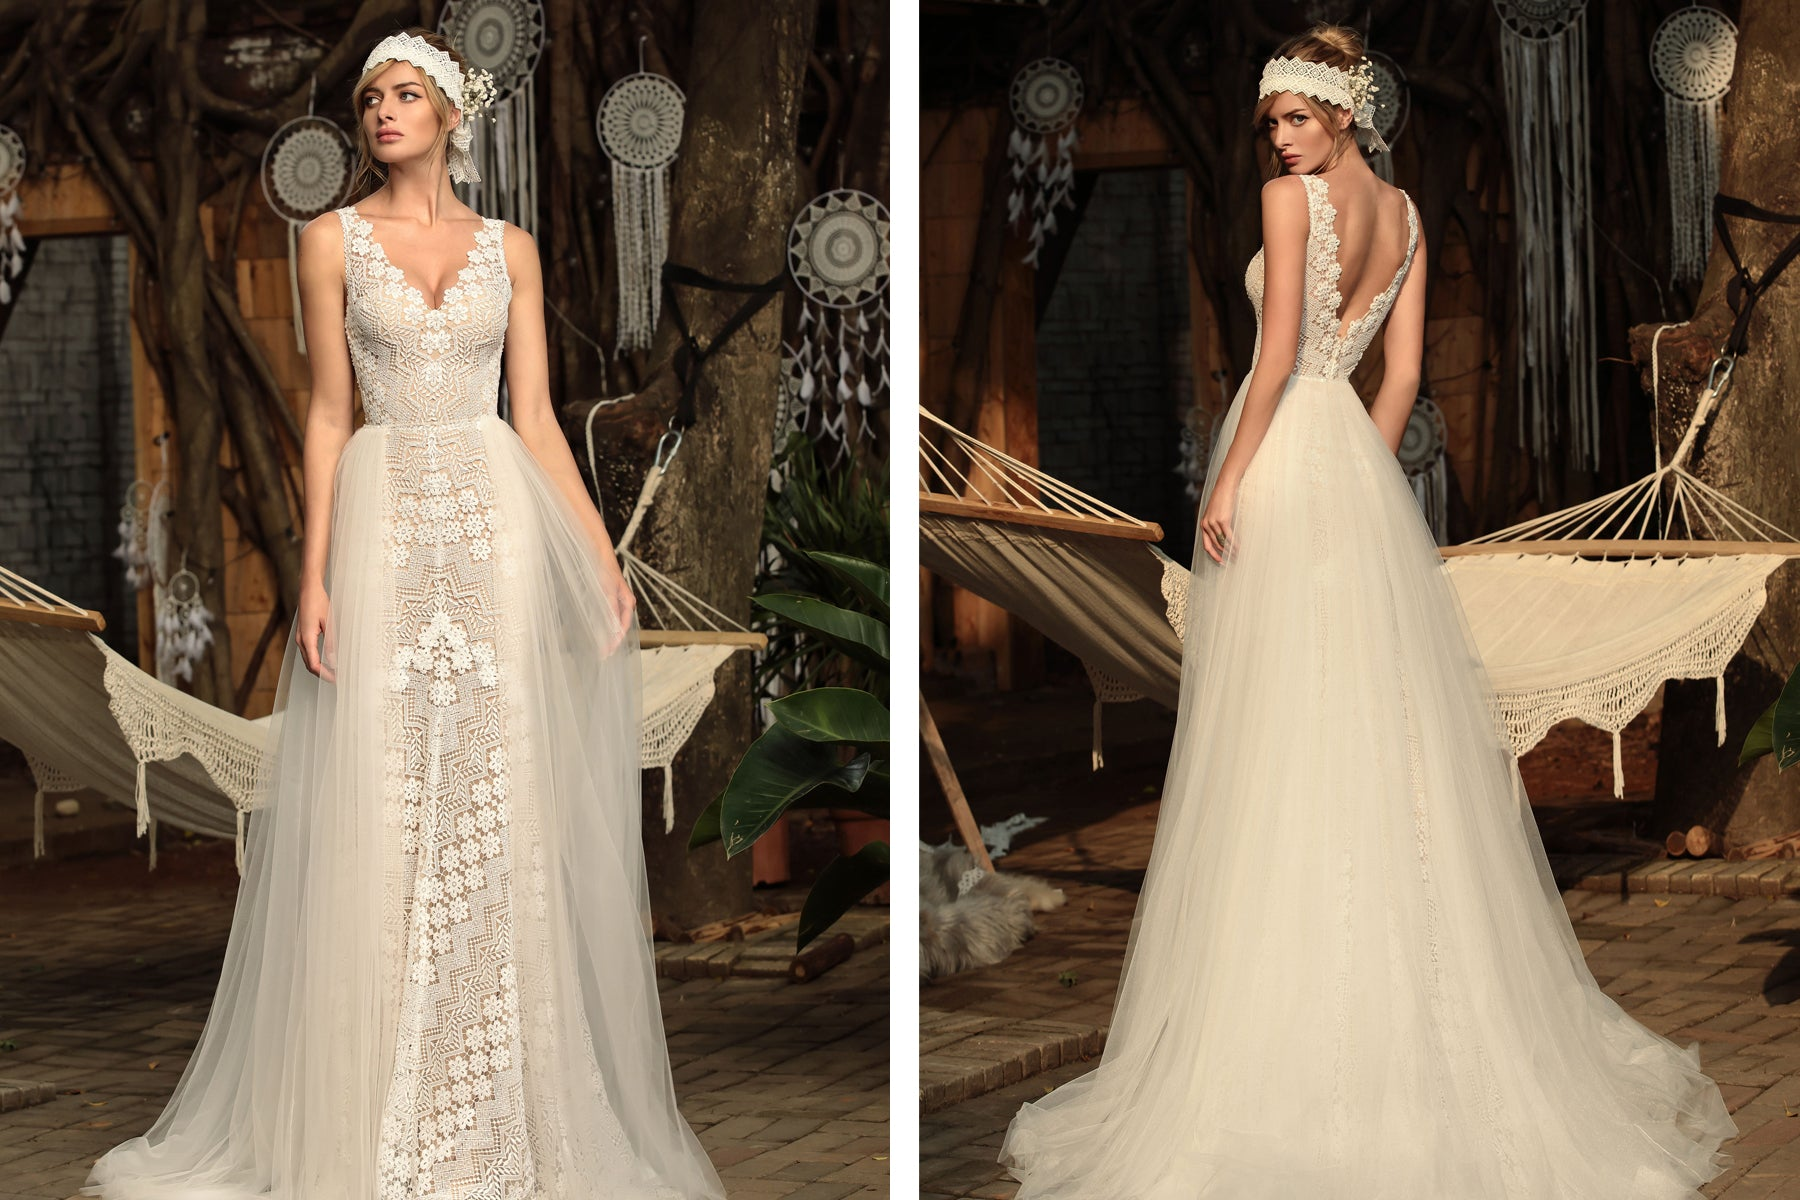 Eternal-bridal-wedding-dress-chic-nostalgia-mellow-collection-cameron